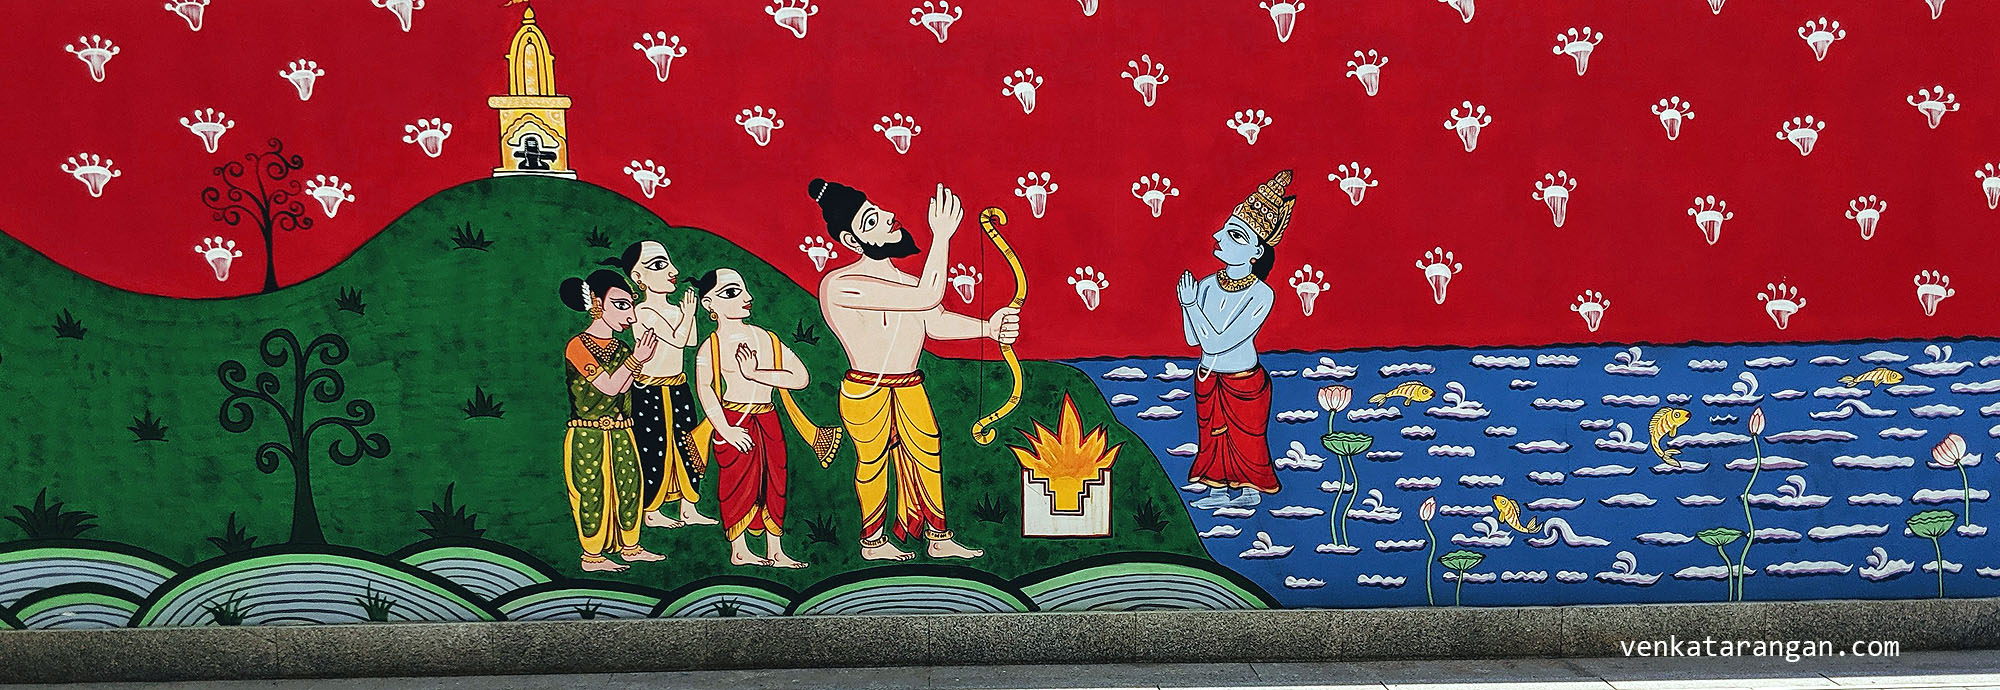 Dasavaratharam - 6. The Parashuram (Lord Ram with an Axe) is shown by a mural depicting the moment when Lord Varuna, the God of Rains, blesses Parashuram while he sits in meditation.